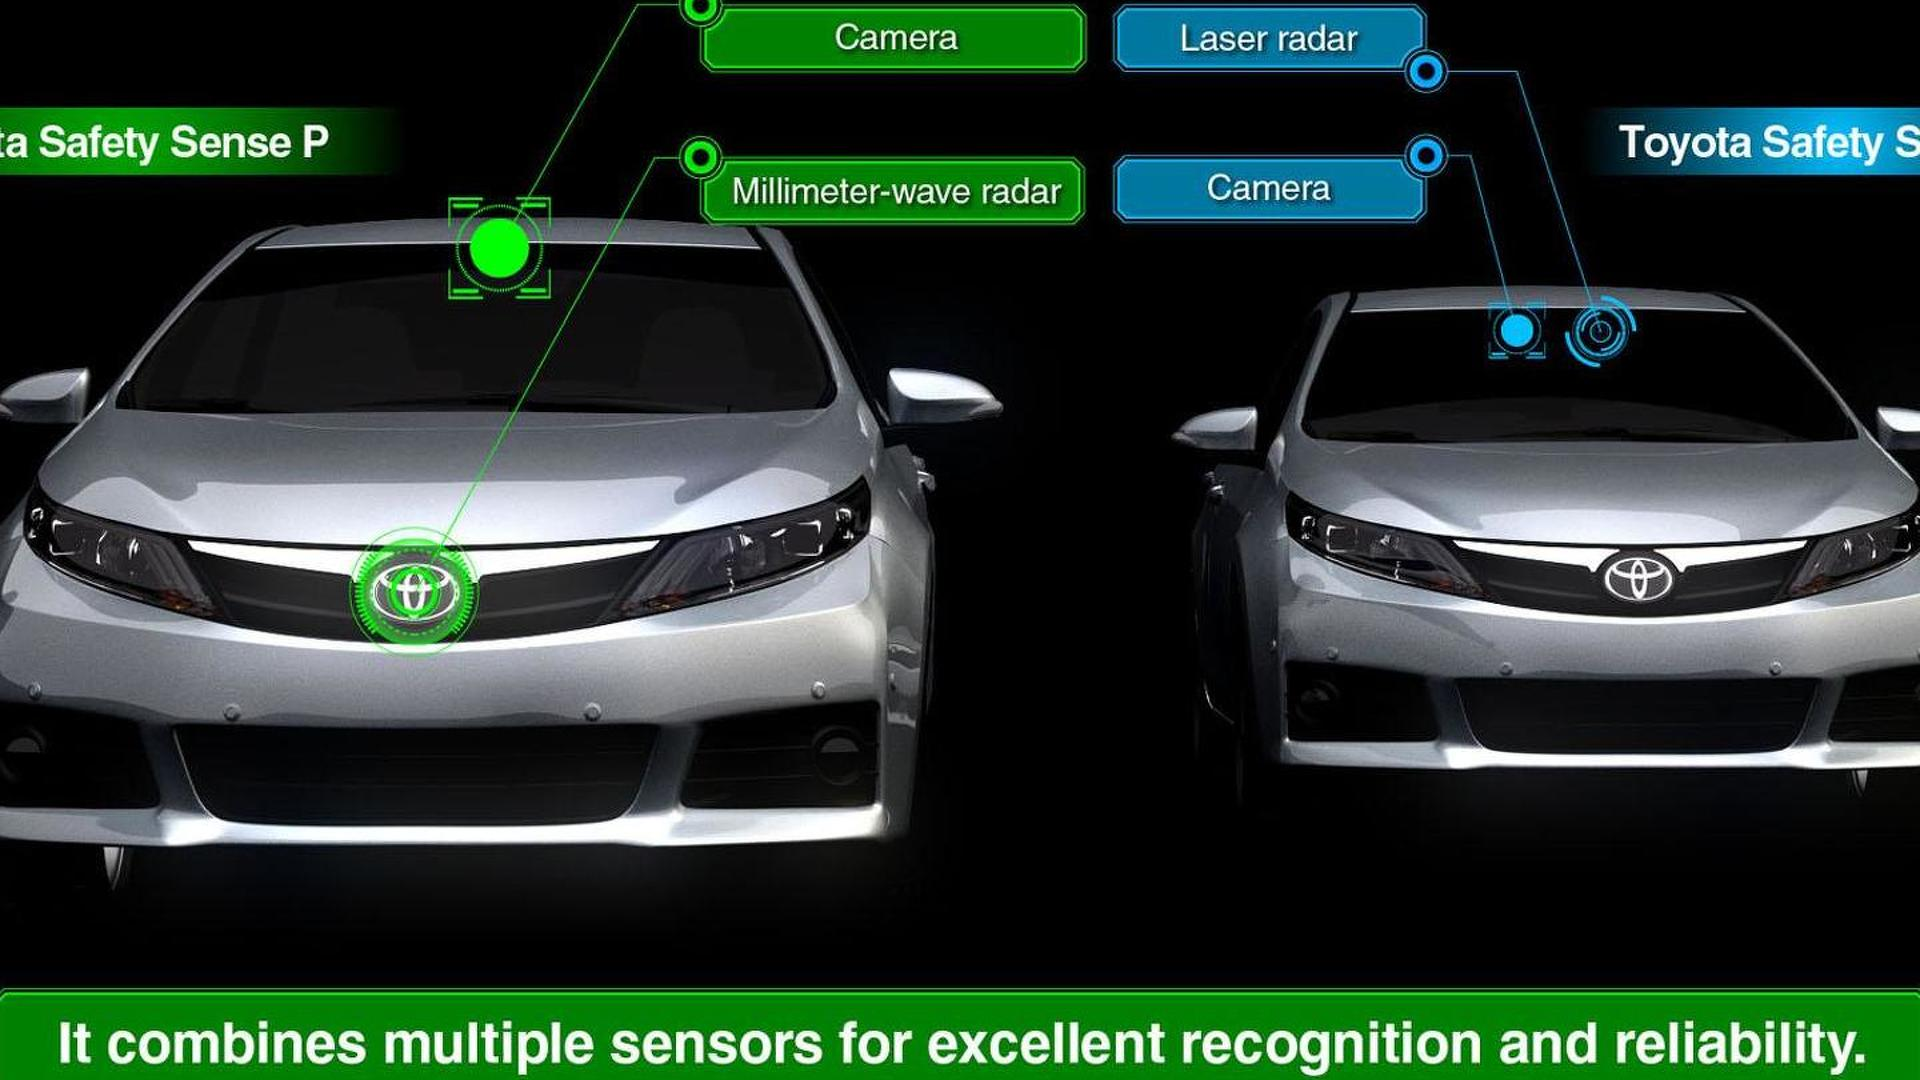 Toyota introduces new safety tech, will begin rolling out next year [video]